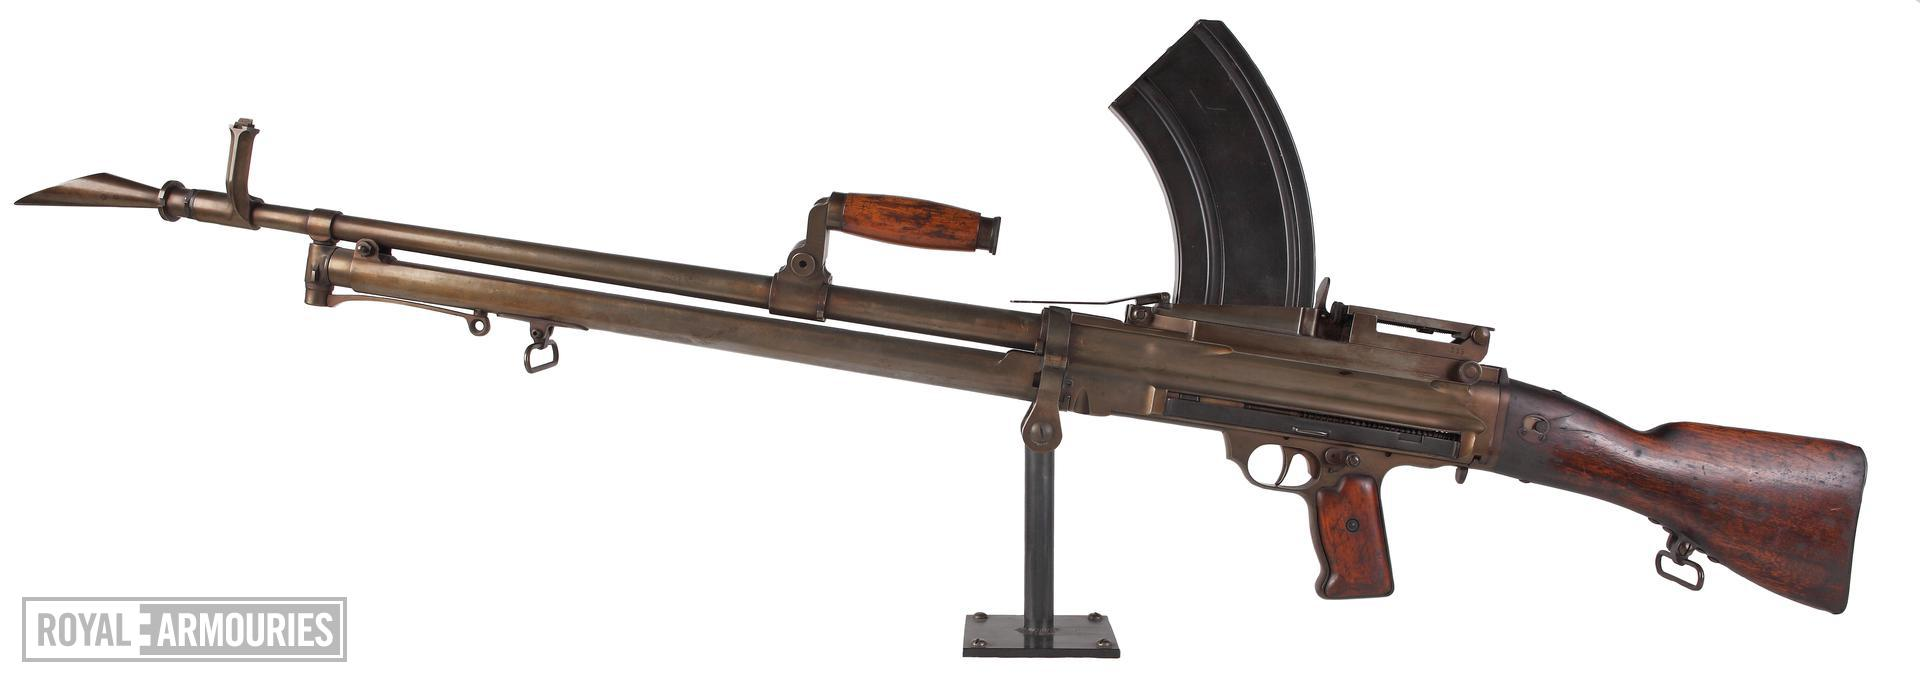 Centrefire automatic light machine gun - Experimental Lewis Lewis light machine gun produced by Soley Arms Co. and adapted for Bren detachable box magazine feed in lieu of the Lewis drum mechanism.